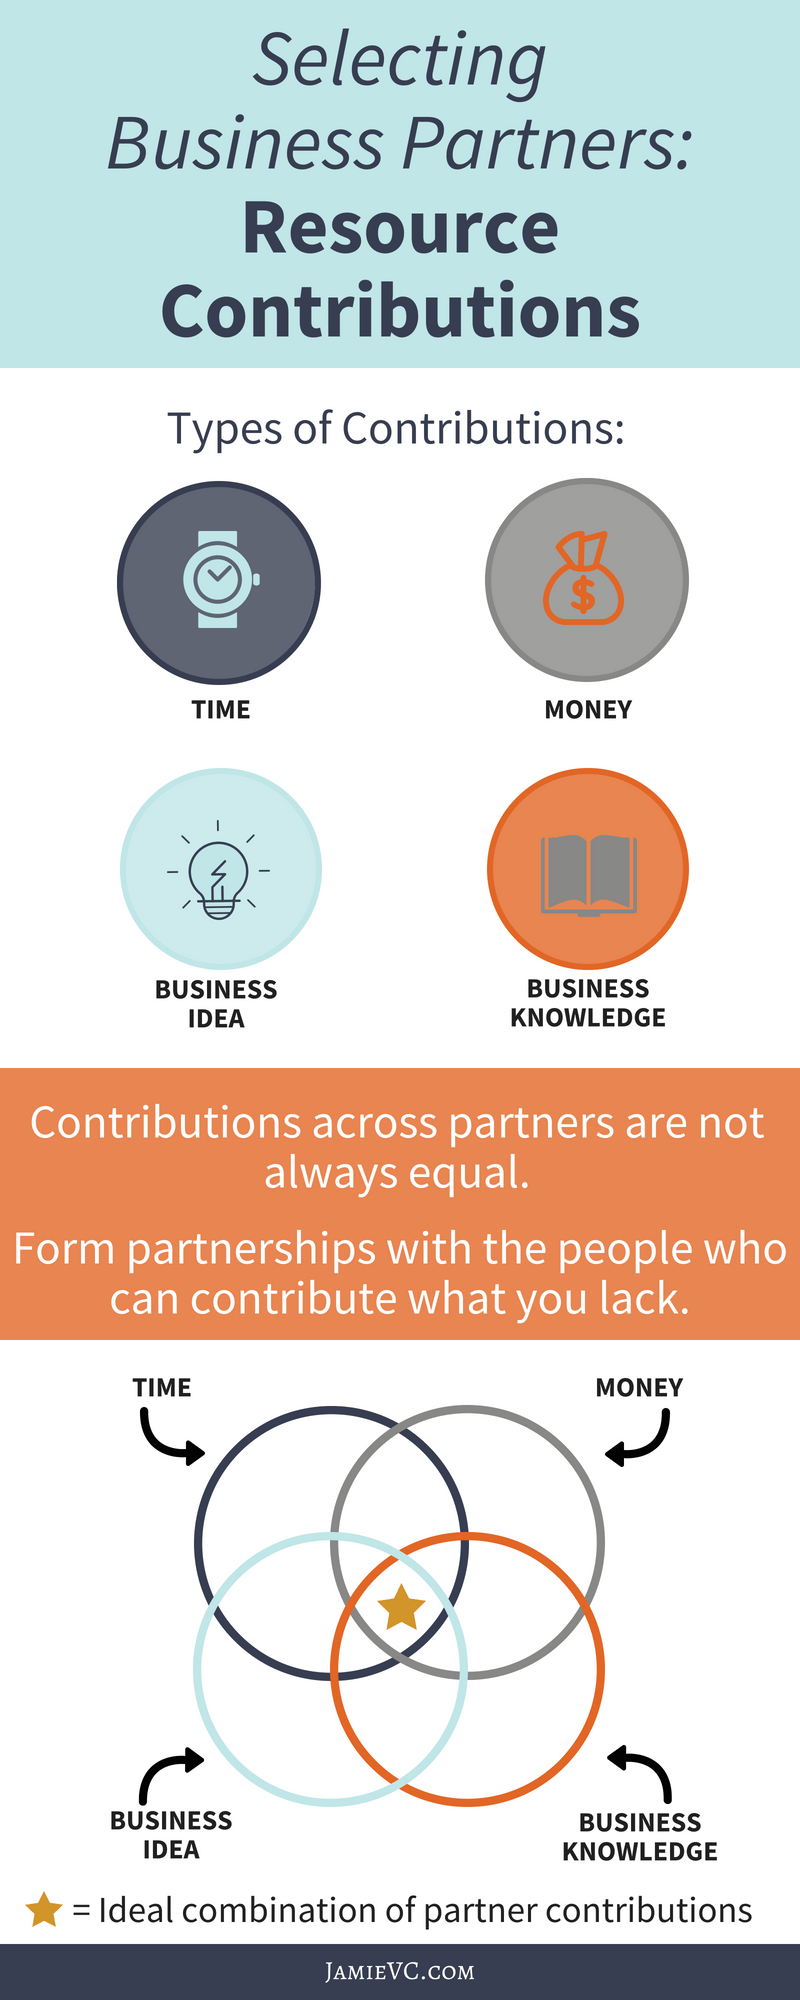 Business Partners - Resource Contributions